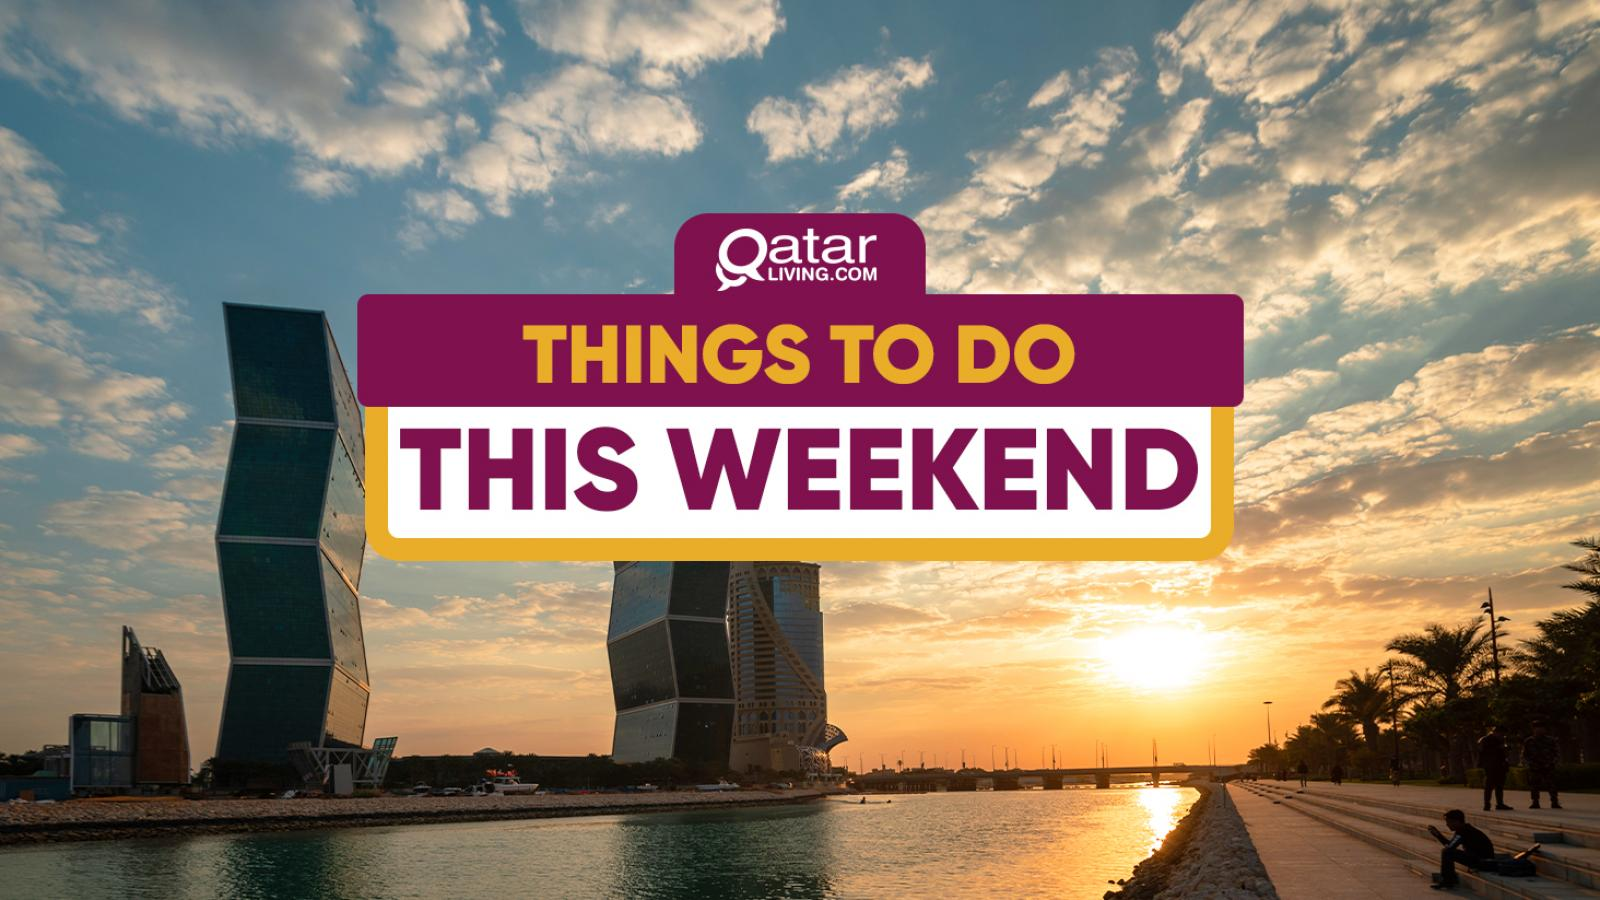 Five things to do in Qatar this weekend: December 31 to January 2